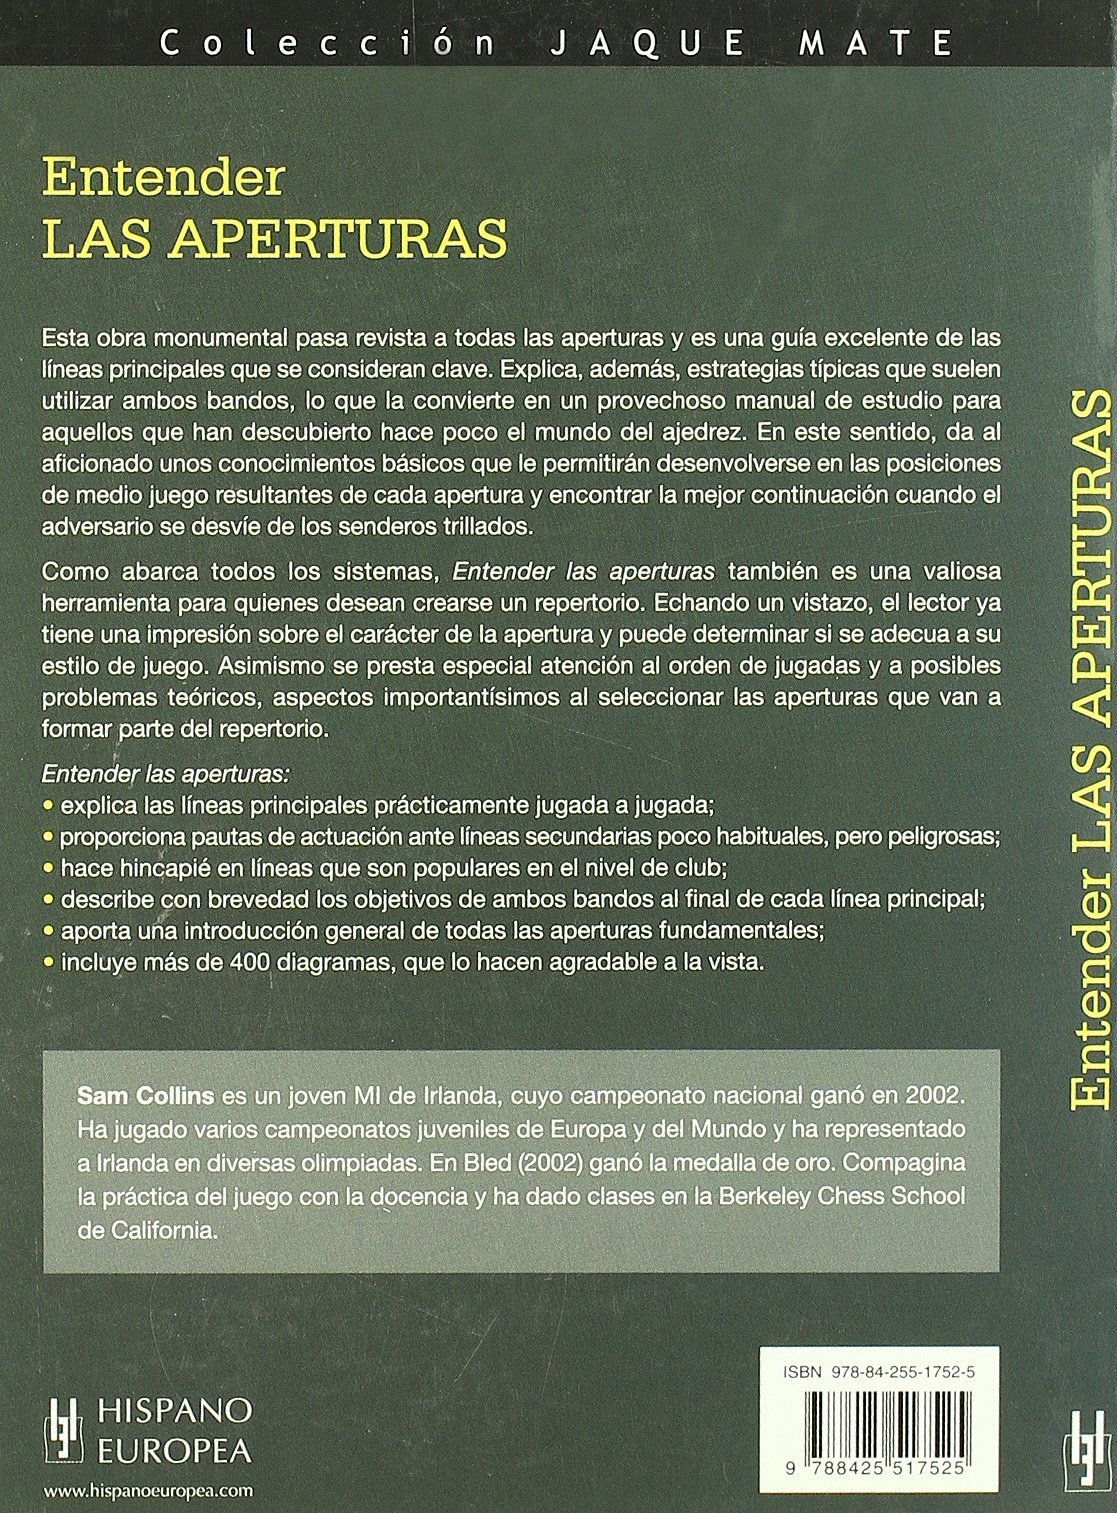 Entender las aperturas/ Understand openings (Ajedrez) (Spanish Edition): Sam Collims: 9788425517525: Amazon.com: Books